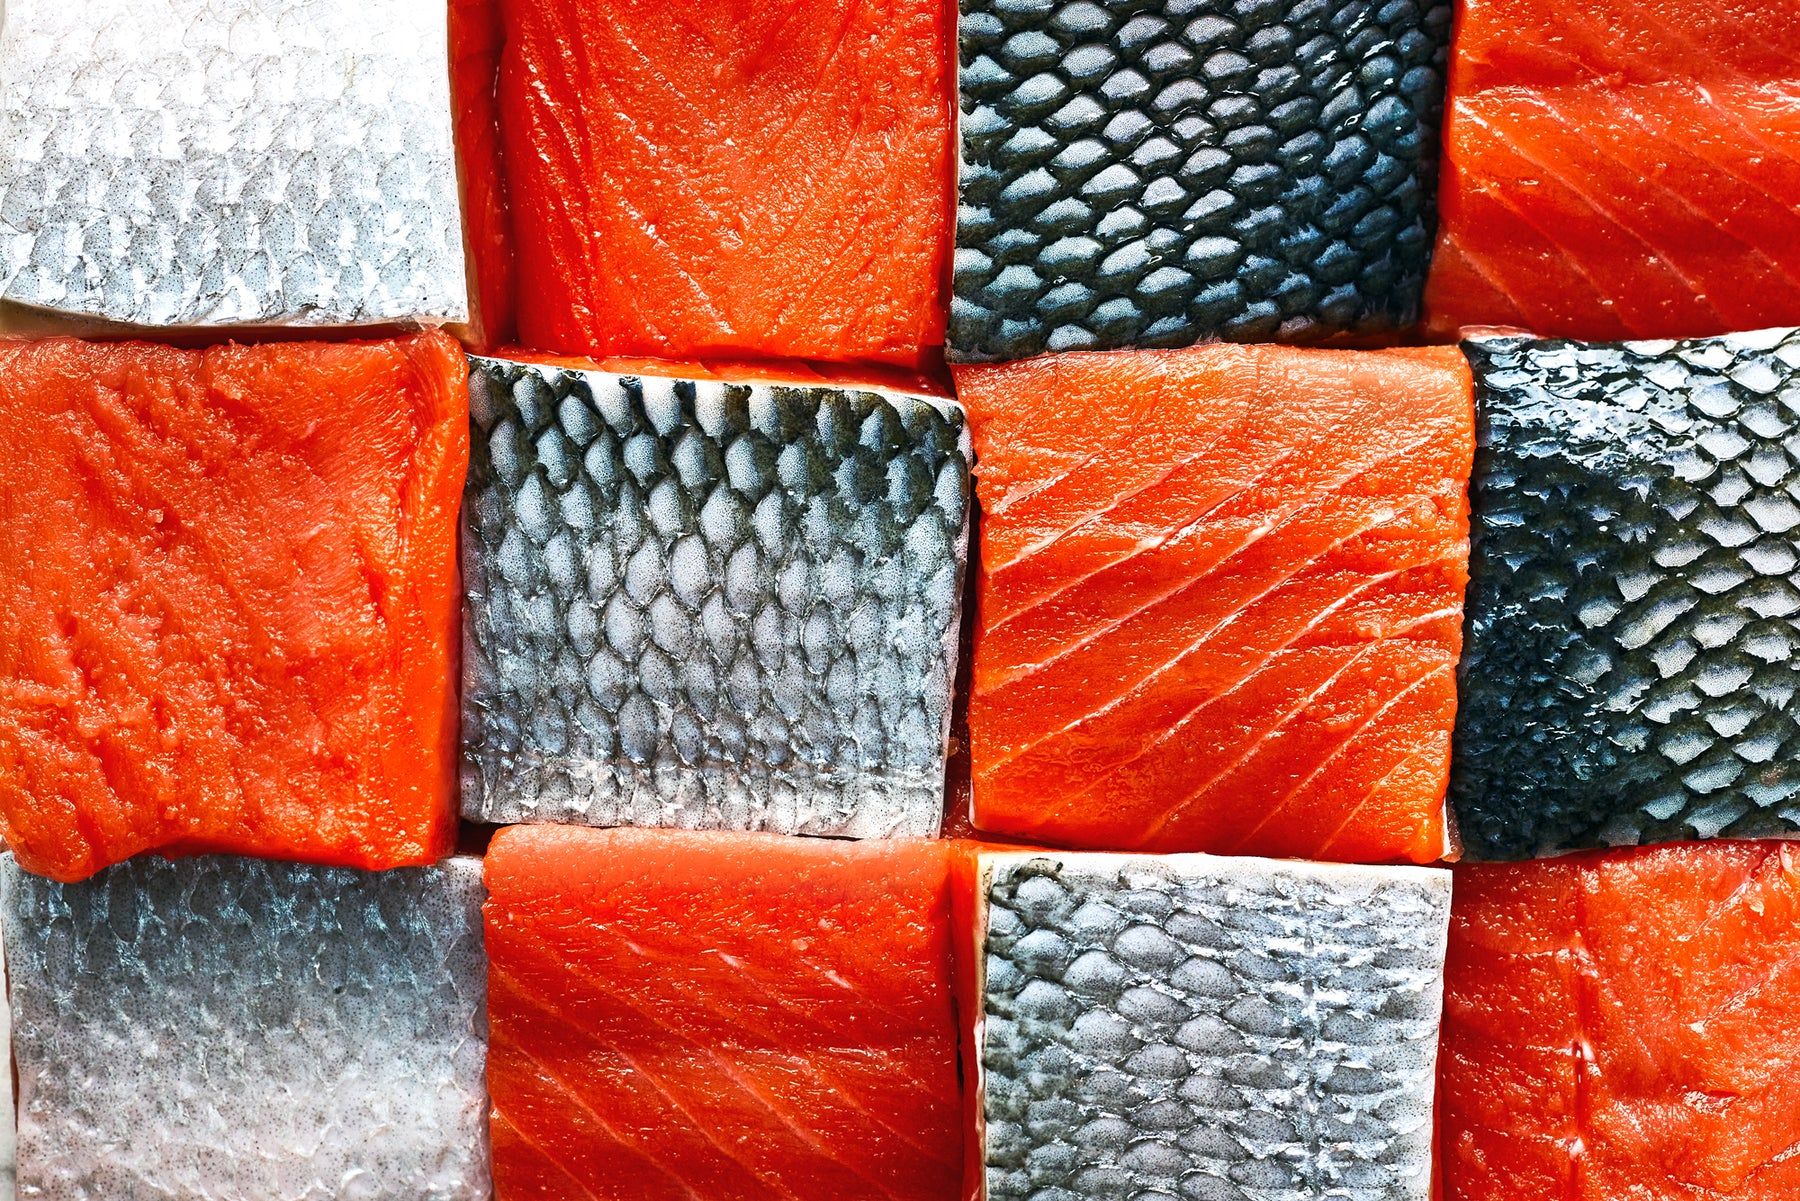 Now's the Time to Order Mass Quantities of Wild Alaskan Salmon Online Video